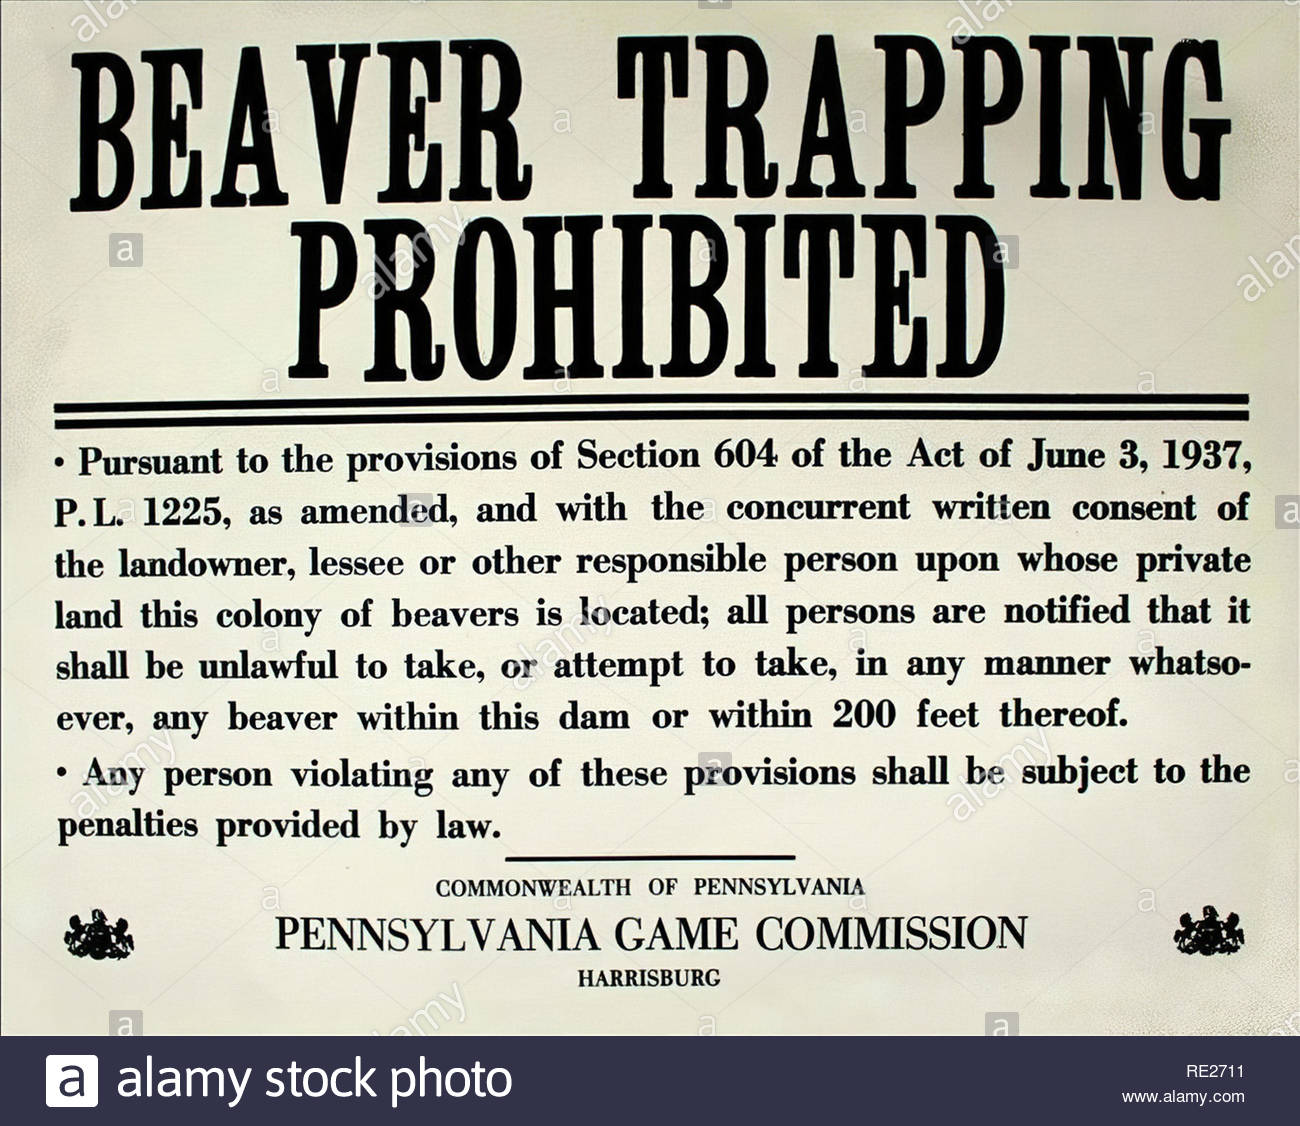 Beaver Trapping Notice 1937 - Stock Image